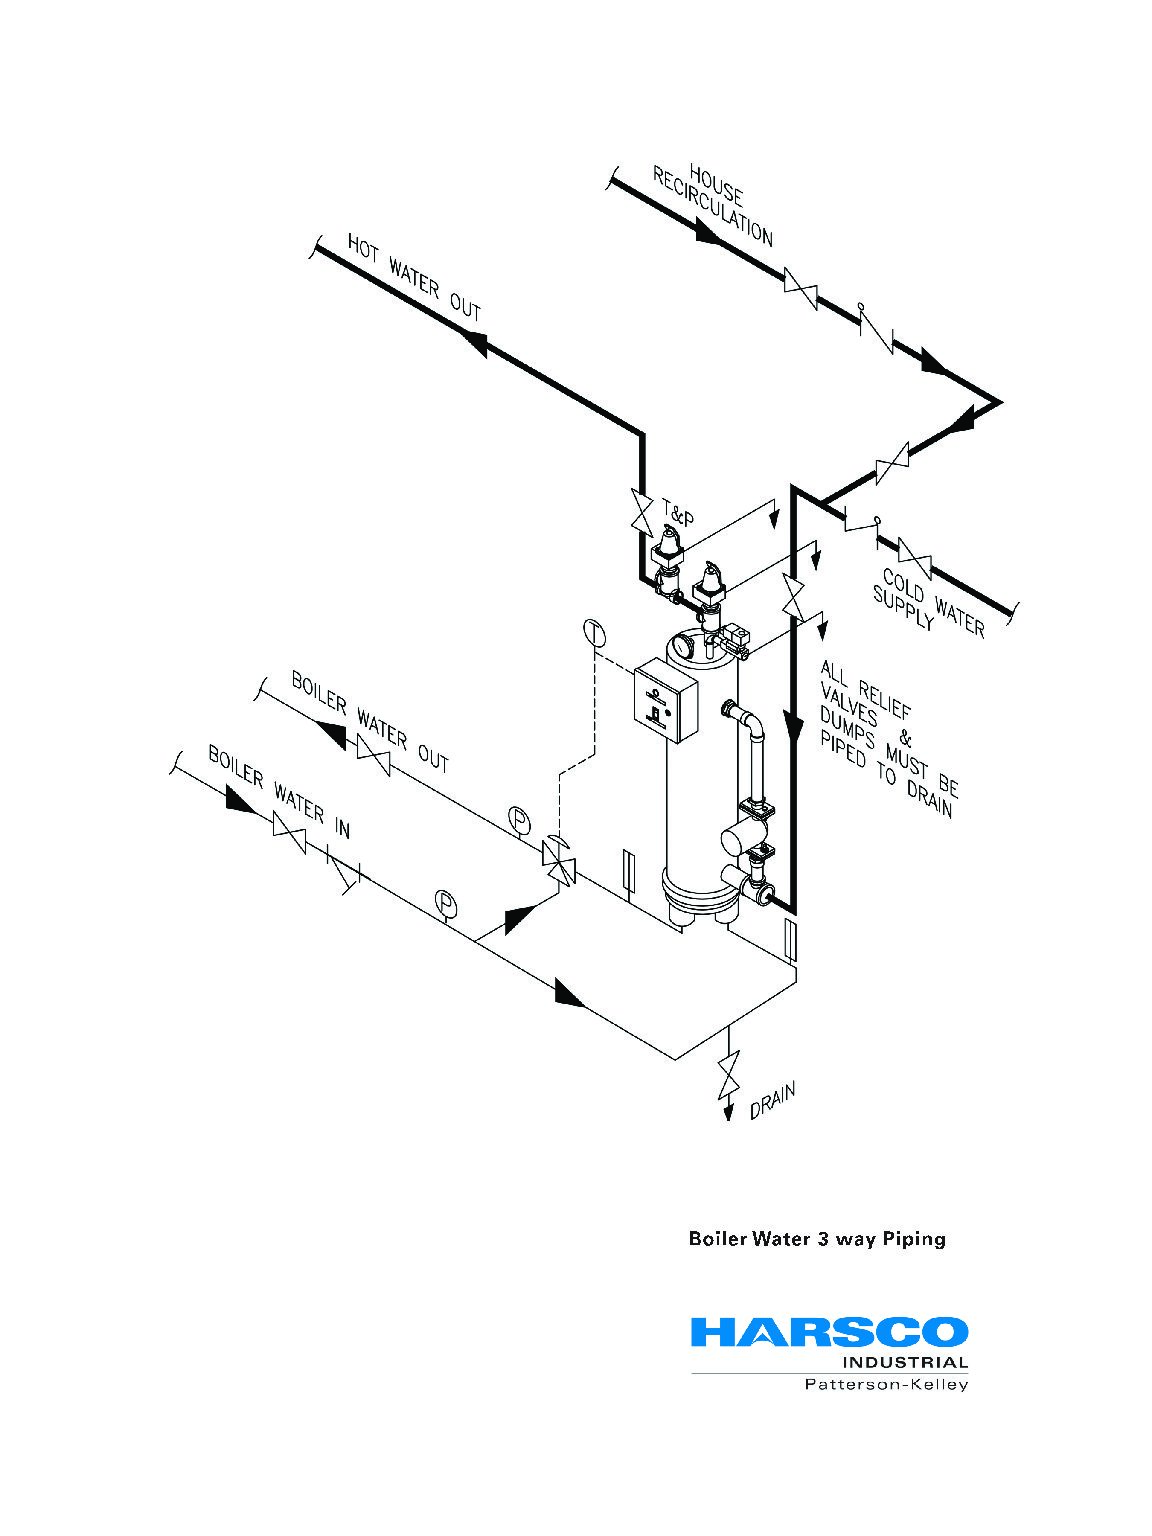 [WRG-4423] Piping Diagram 3 Way Valve